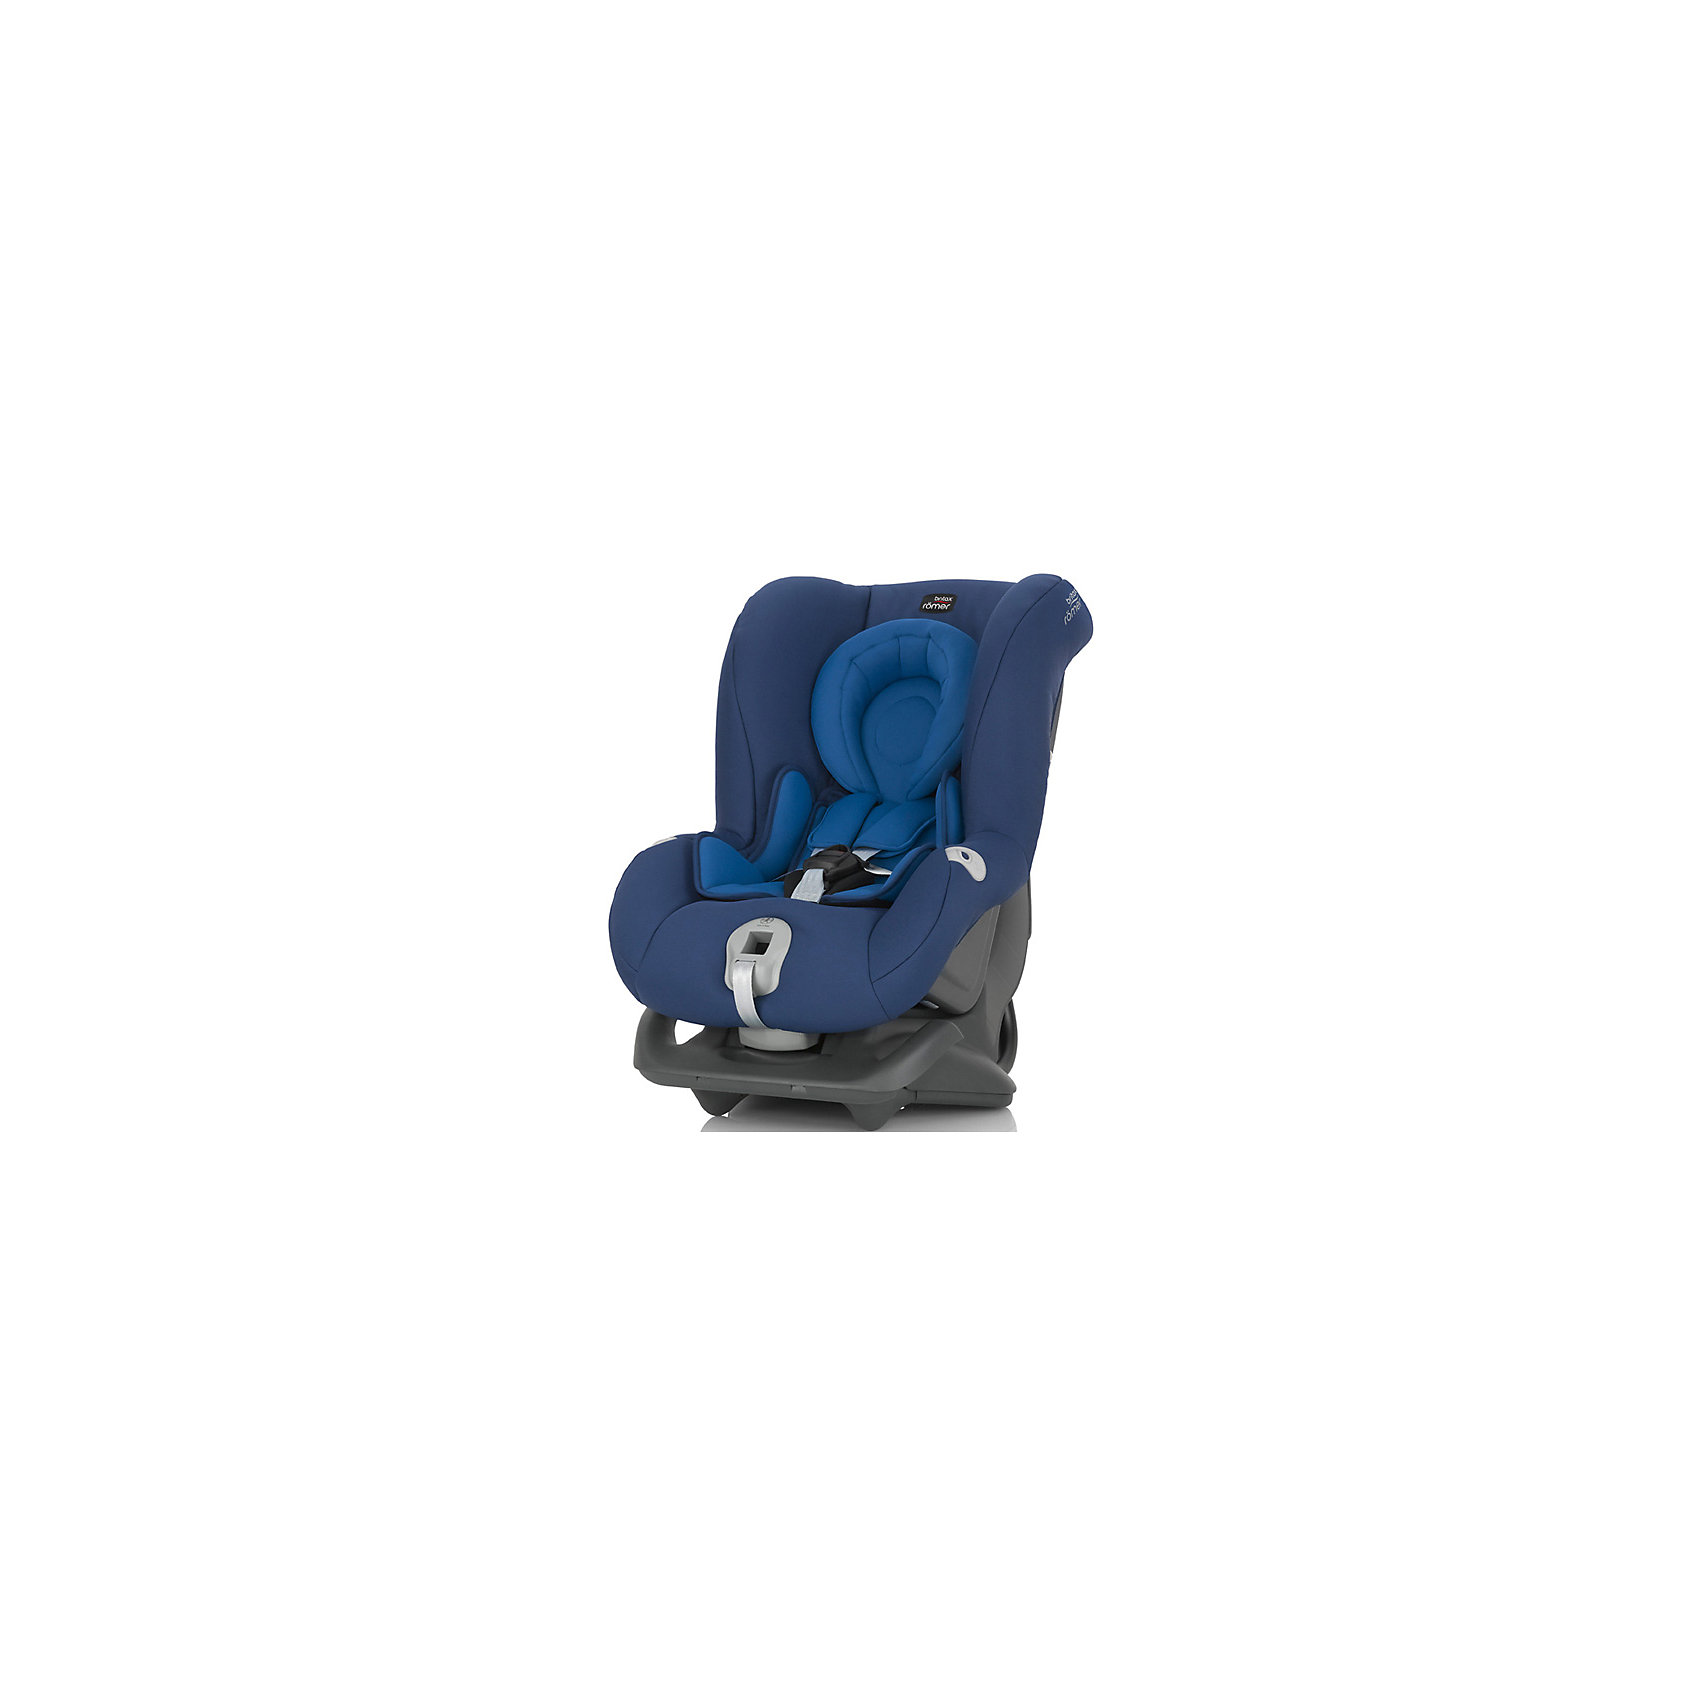 Britax Romer Автокресло Britax Romer FIRST CLASS plus, 0-18 кг, Ocean Blue